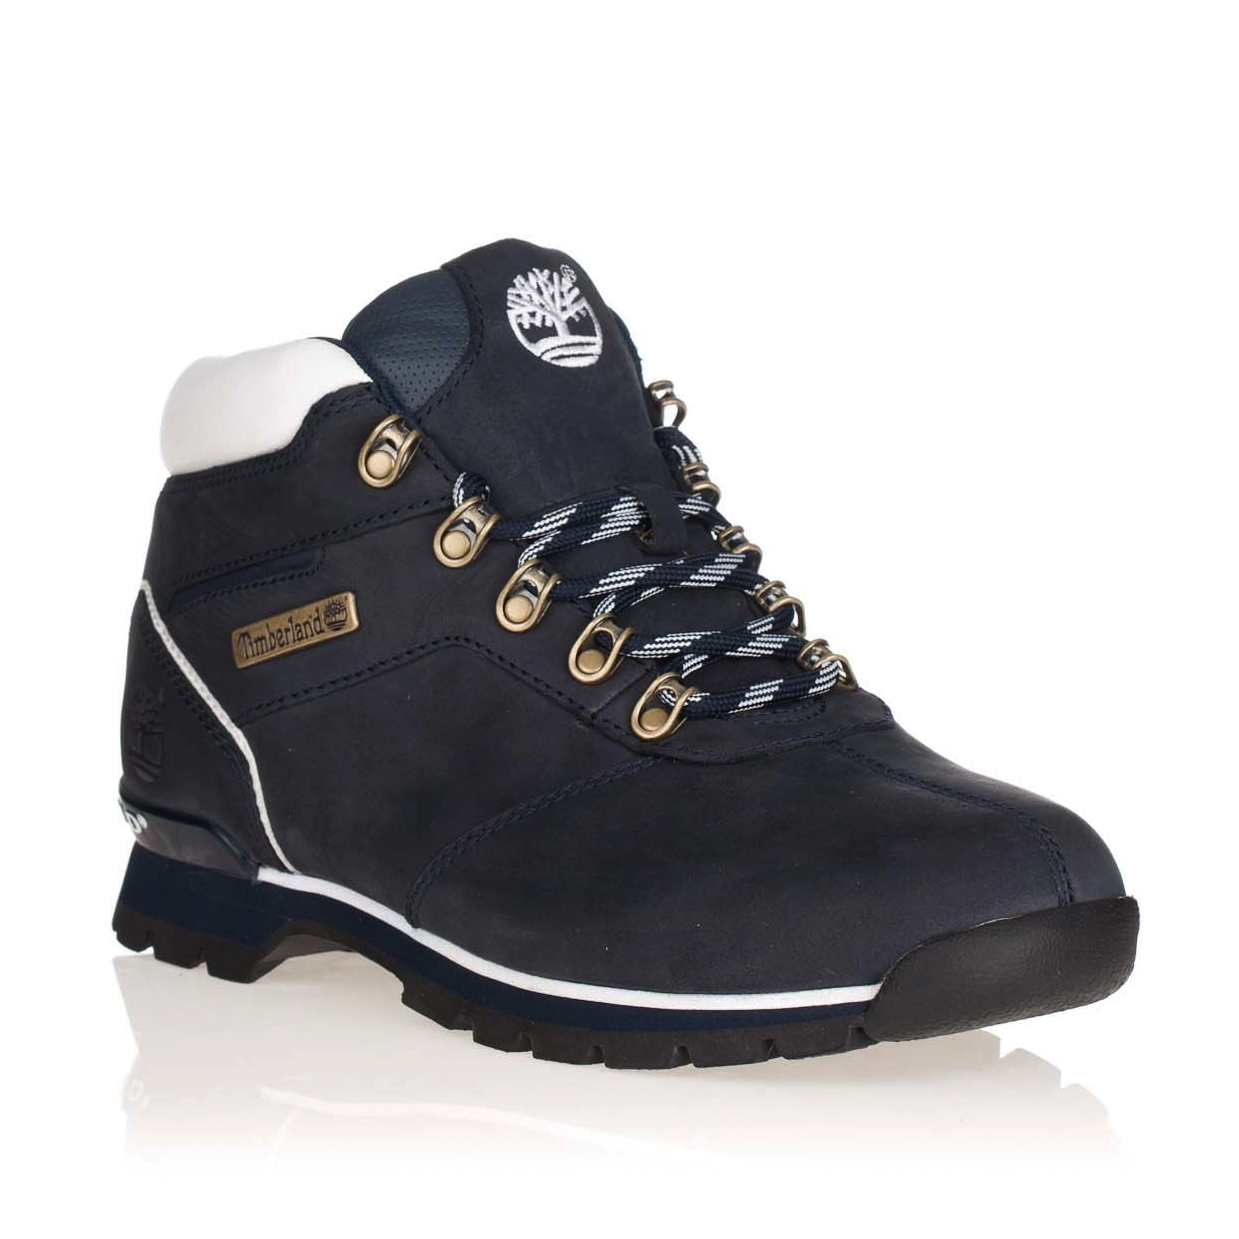 Image of Timberland Splitrock 2 Walking Boots (Men's) Navy Nubuck